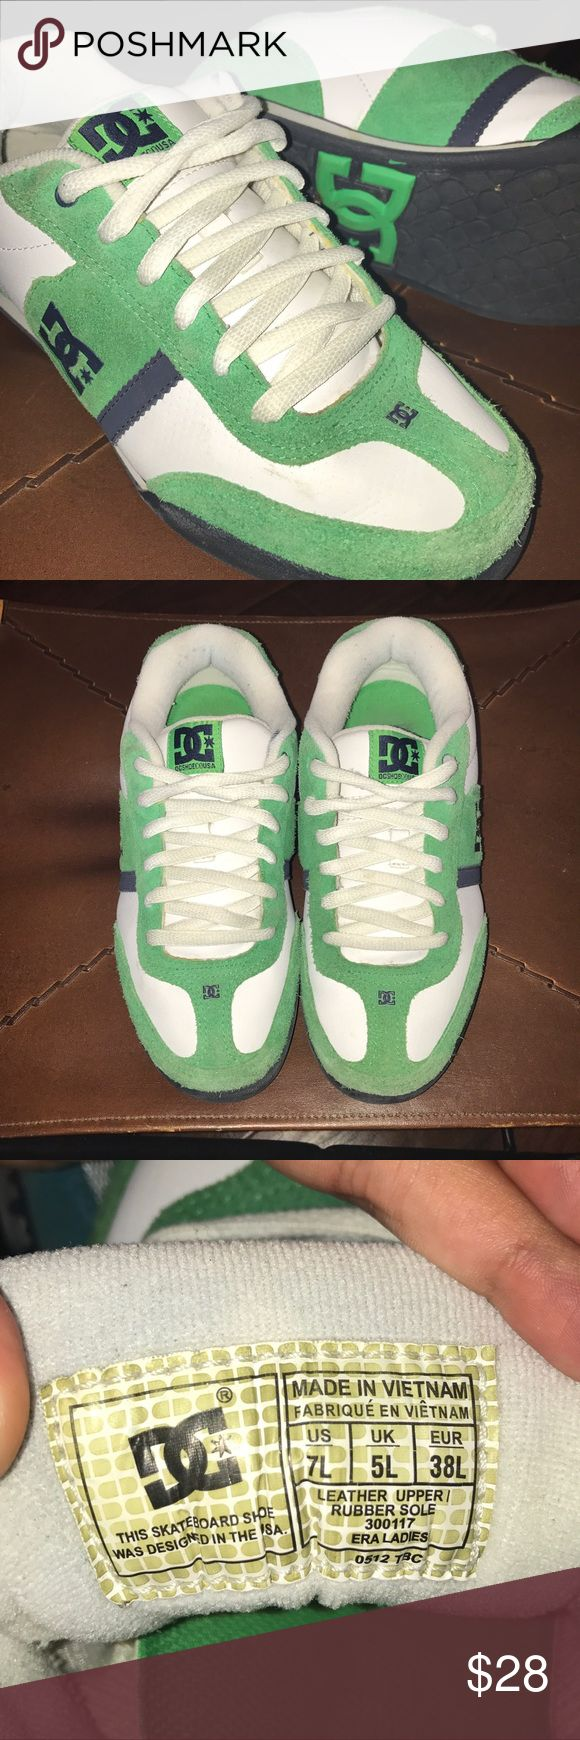 Green & white Era DC skate shoes (DC Shoe Co USA) Real leather upper, rubber sole, cushioned tongue for more protection while skateboarding. Designed in the USA. Size 5 UK, 7 US in Women's. DC Shoes Sneakers